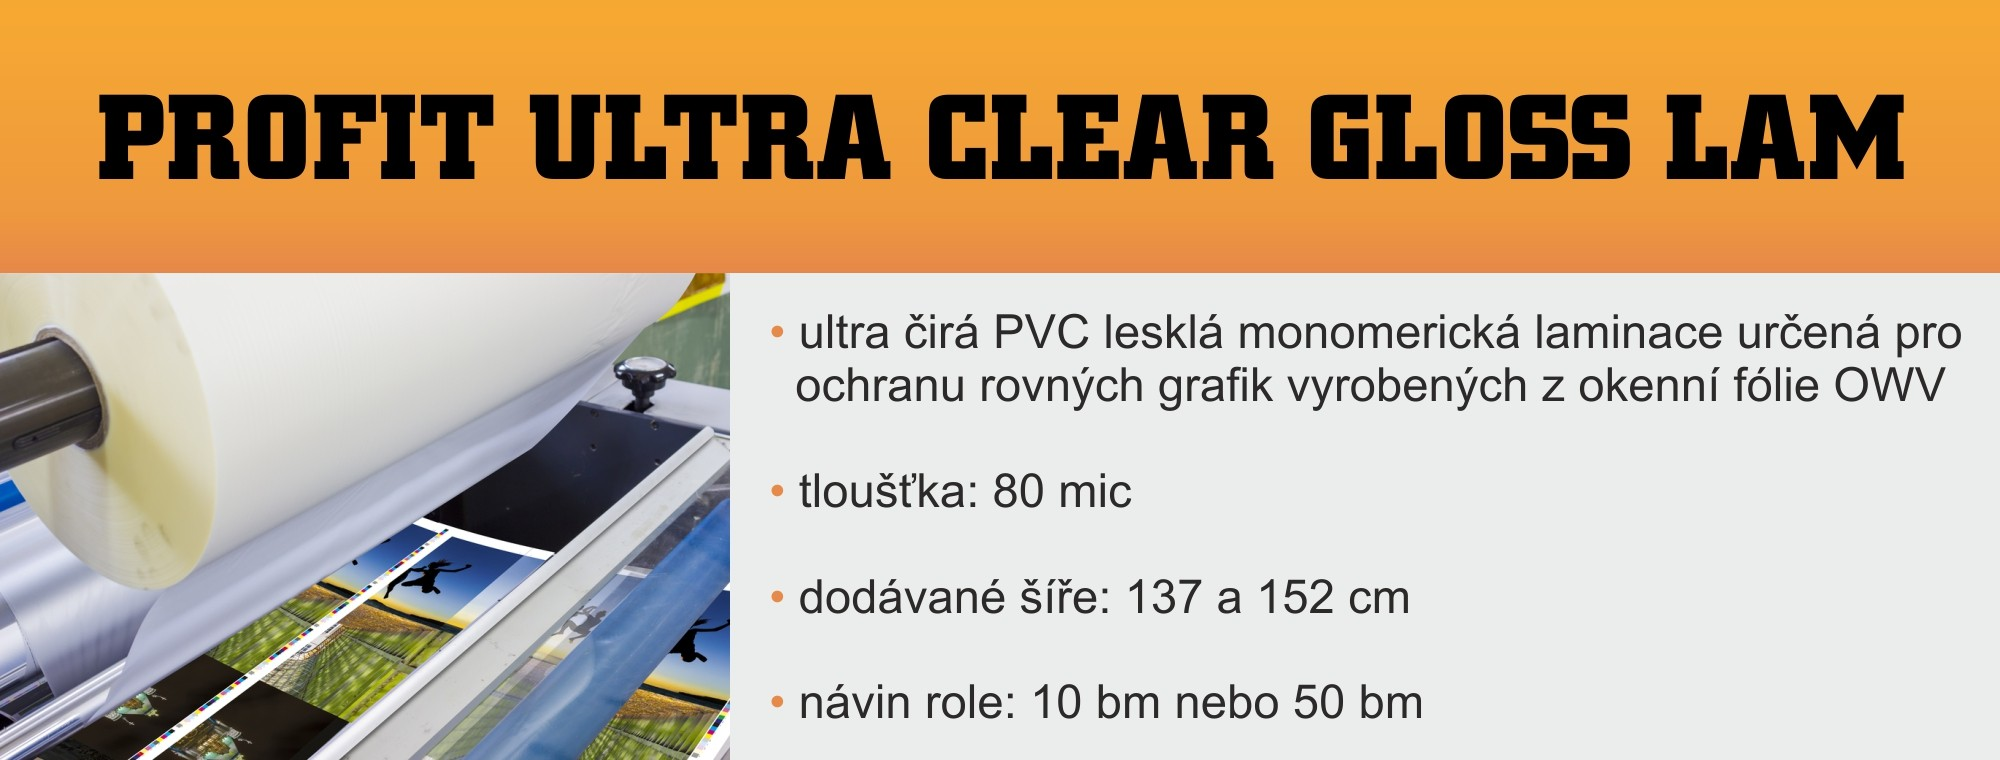 PROFIT ULTRA CLEAR GLOSS LAM